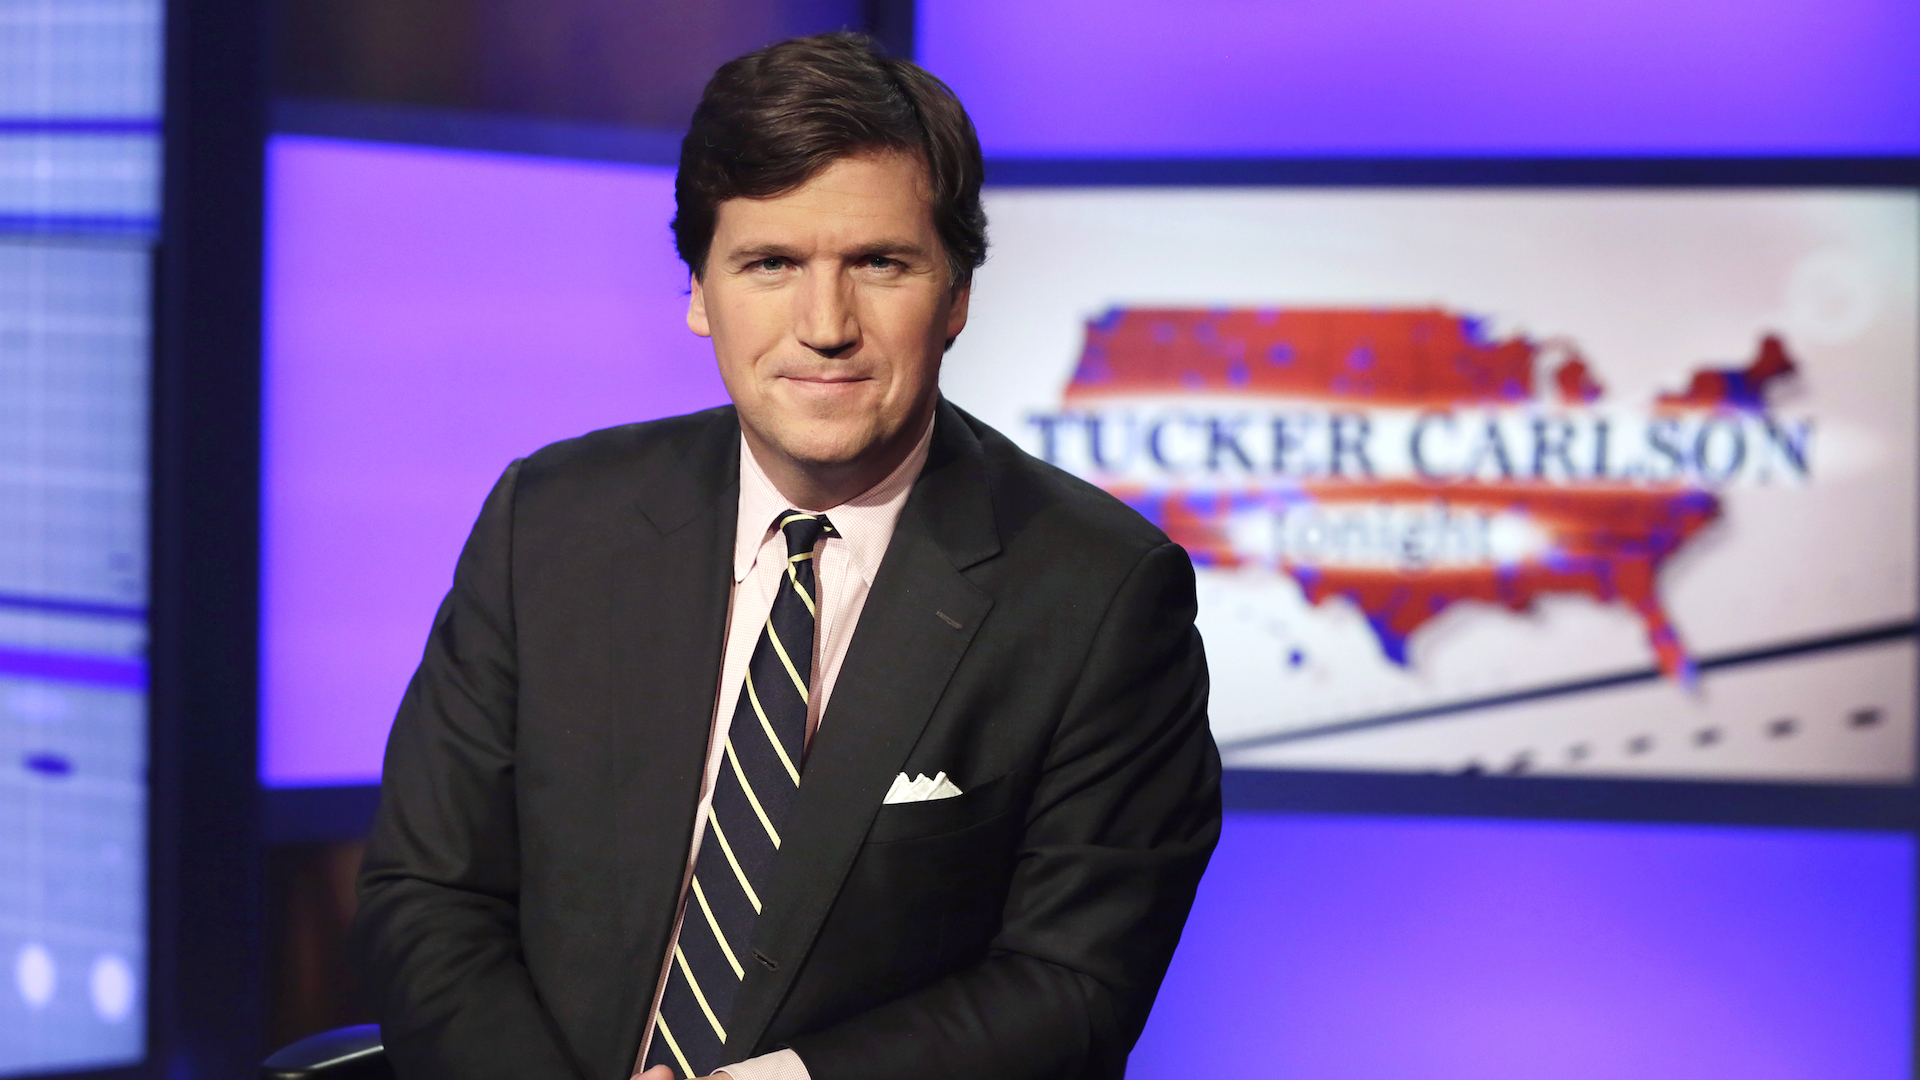 Tucker Carlson suggested immigrants make the U.S. 'dirtier' — and it cost Fox News an advertiser